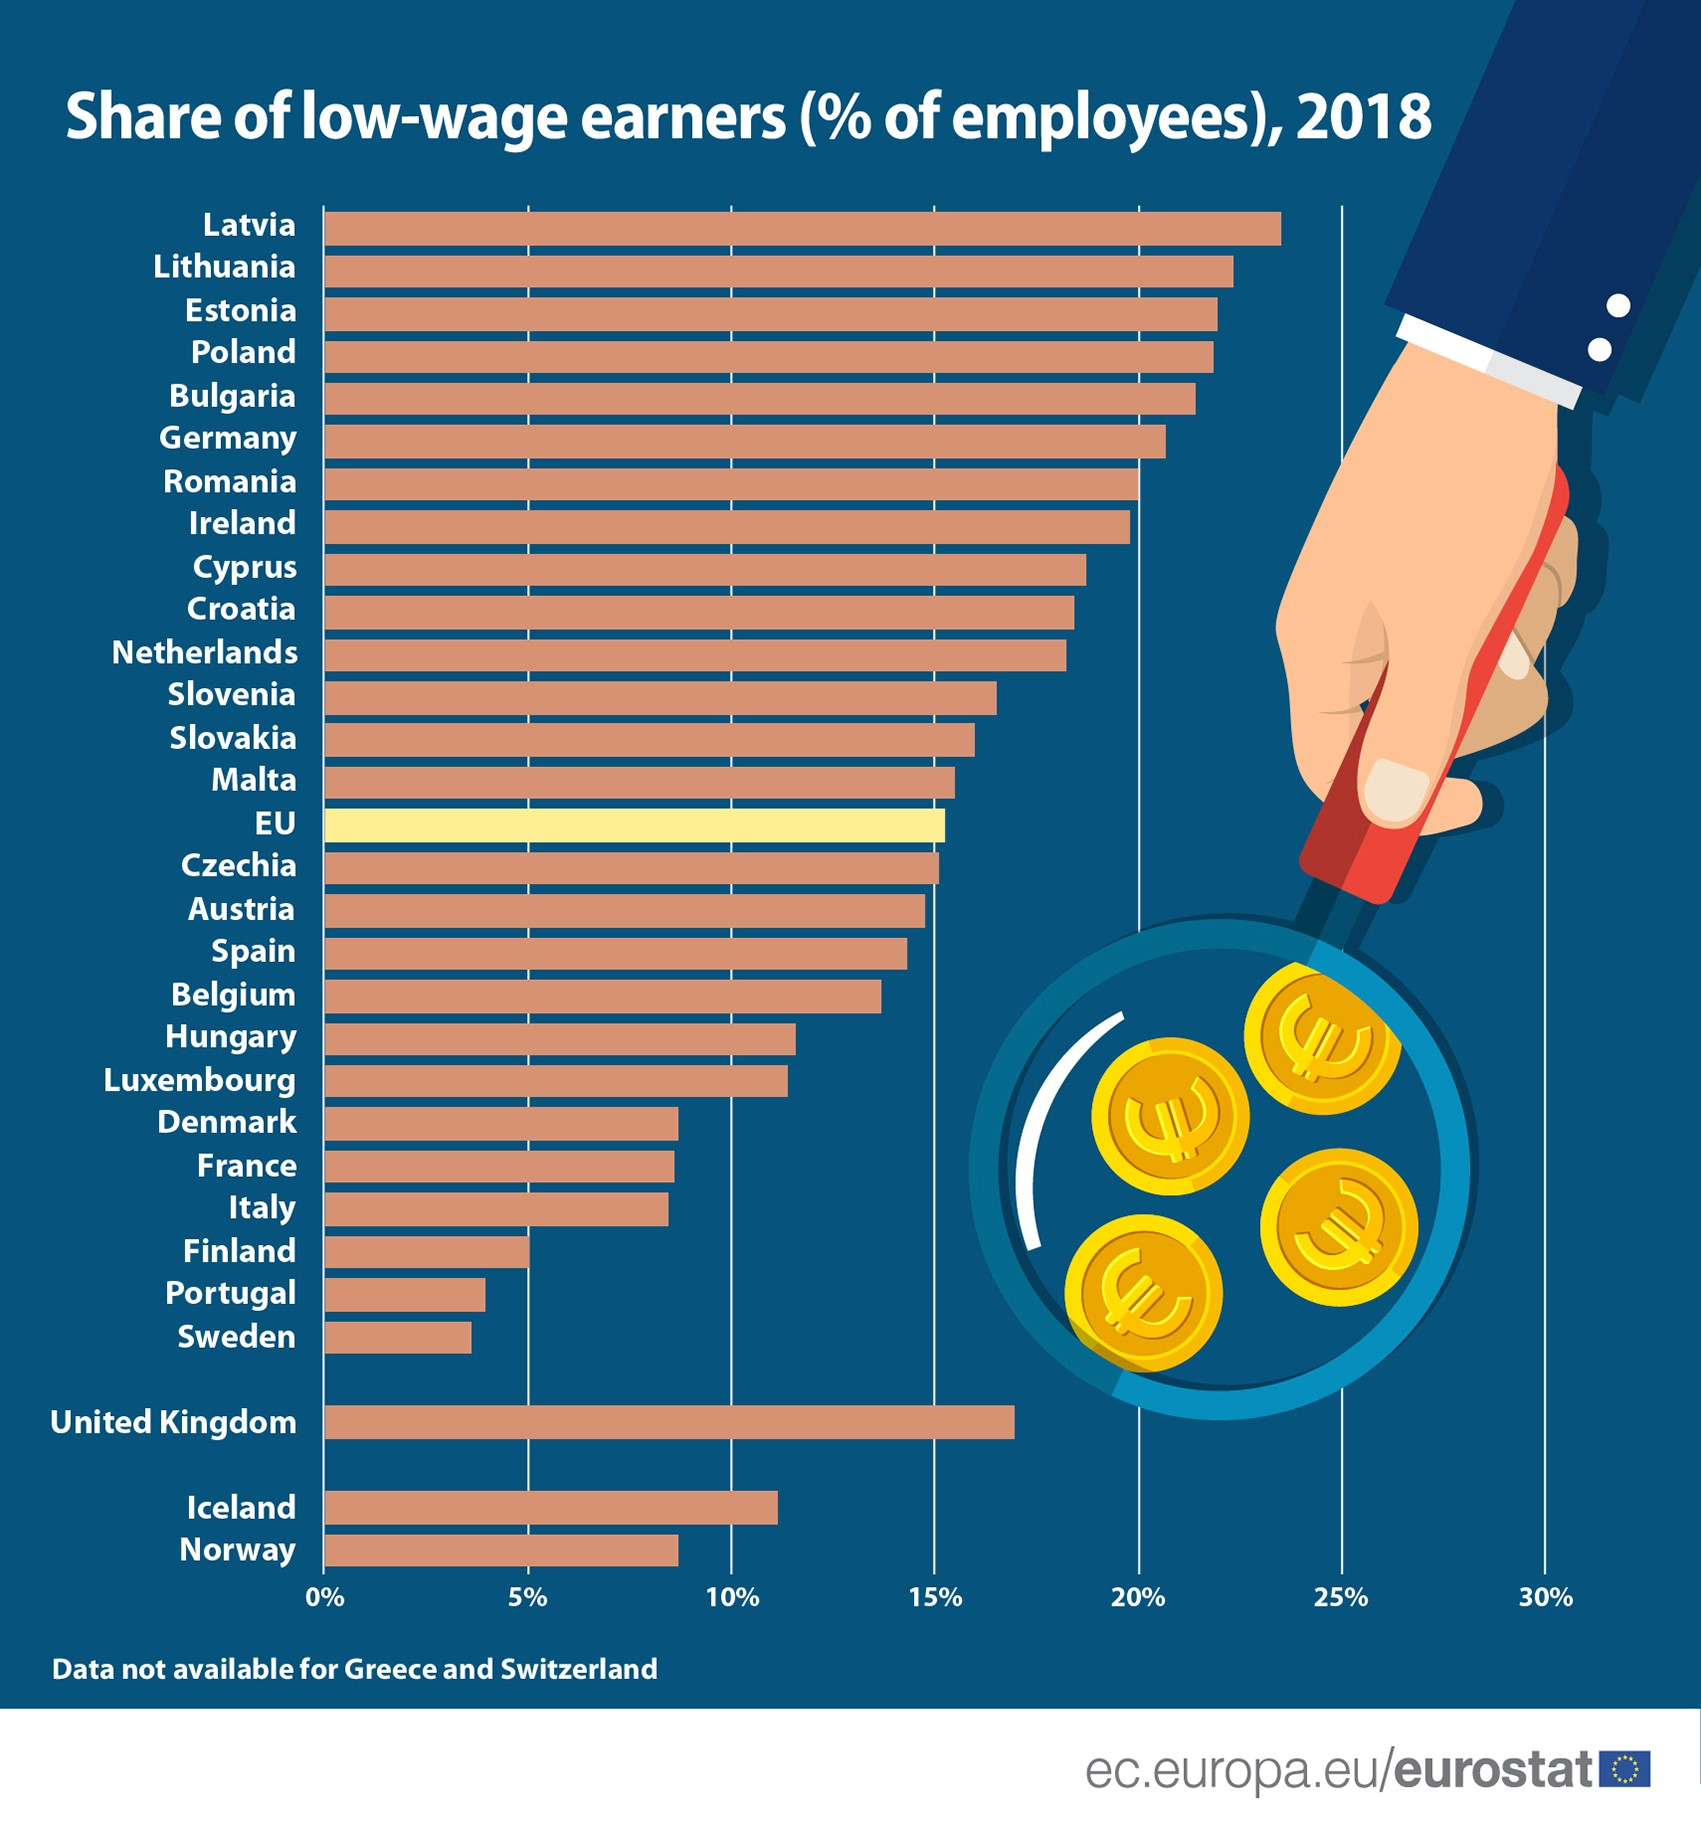 Low-wage earners